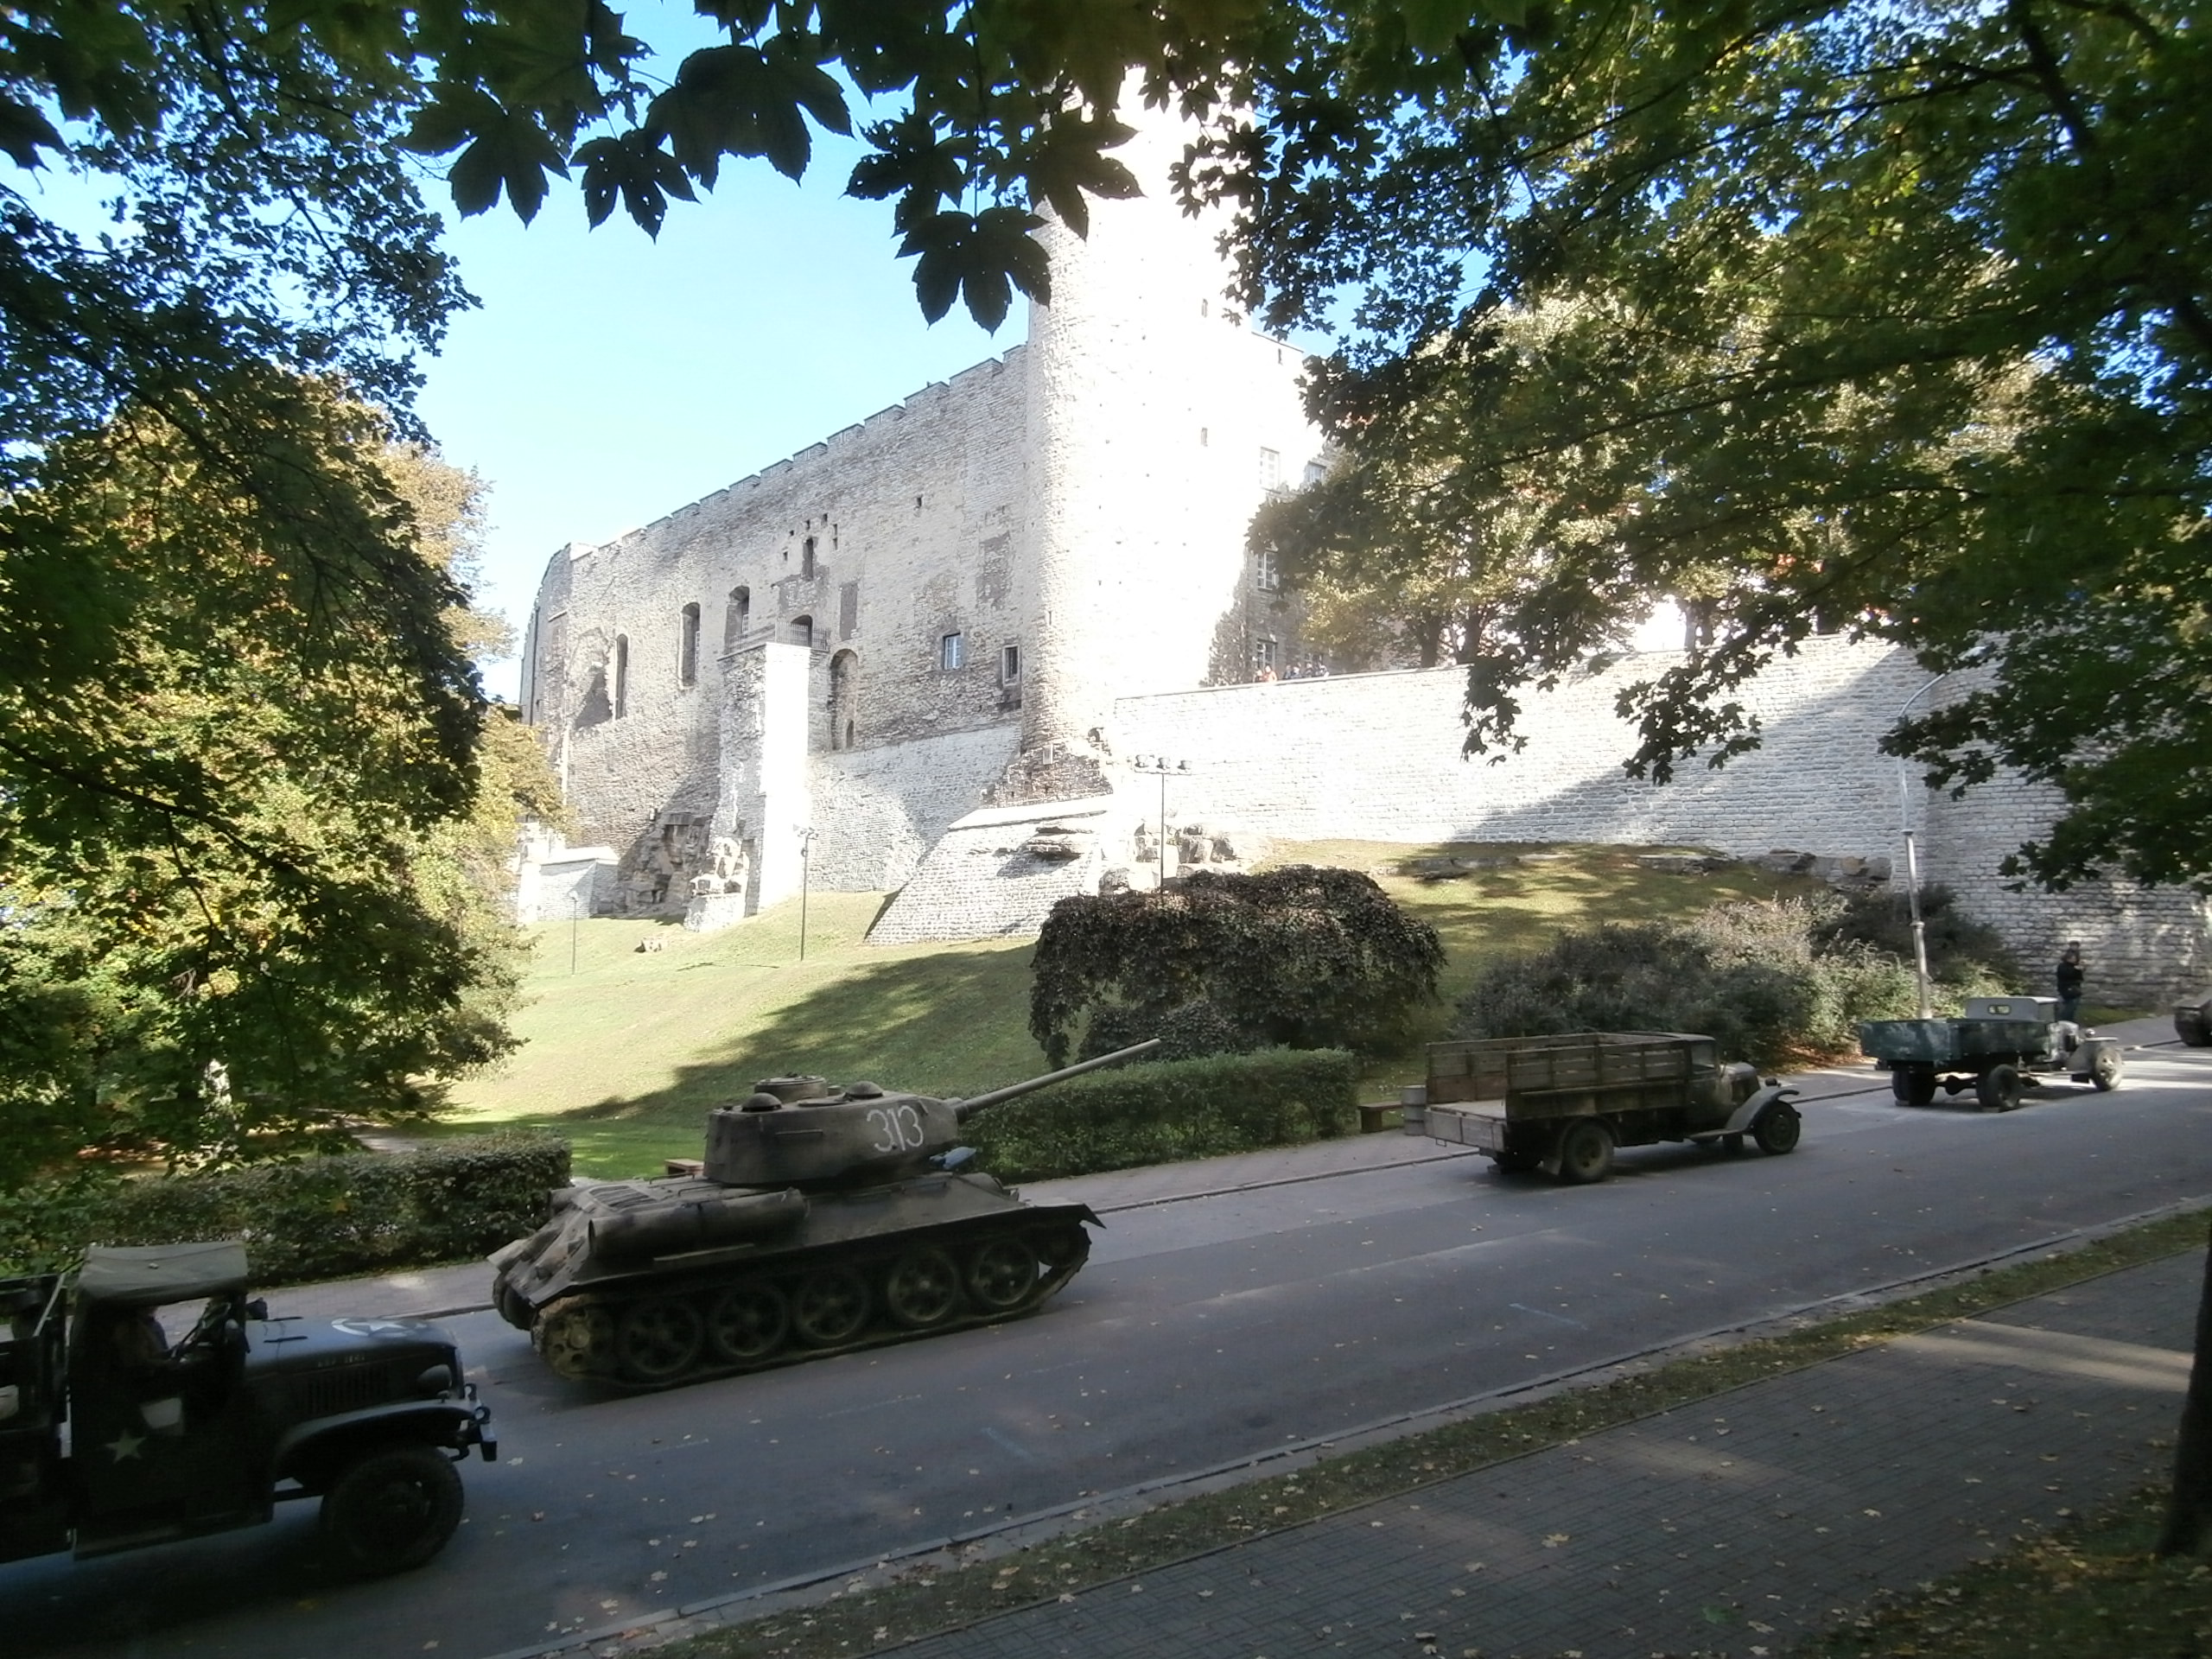 Soviet_Red_Army_Tank_313_and_Trucks_in_front_of_the_Toompea_Castle_in_Tallinn_3_October_2013.JPG